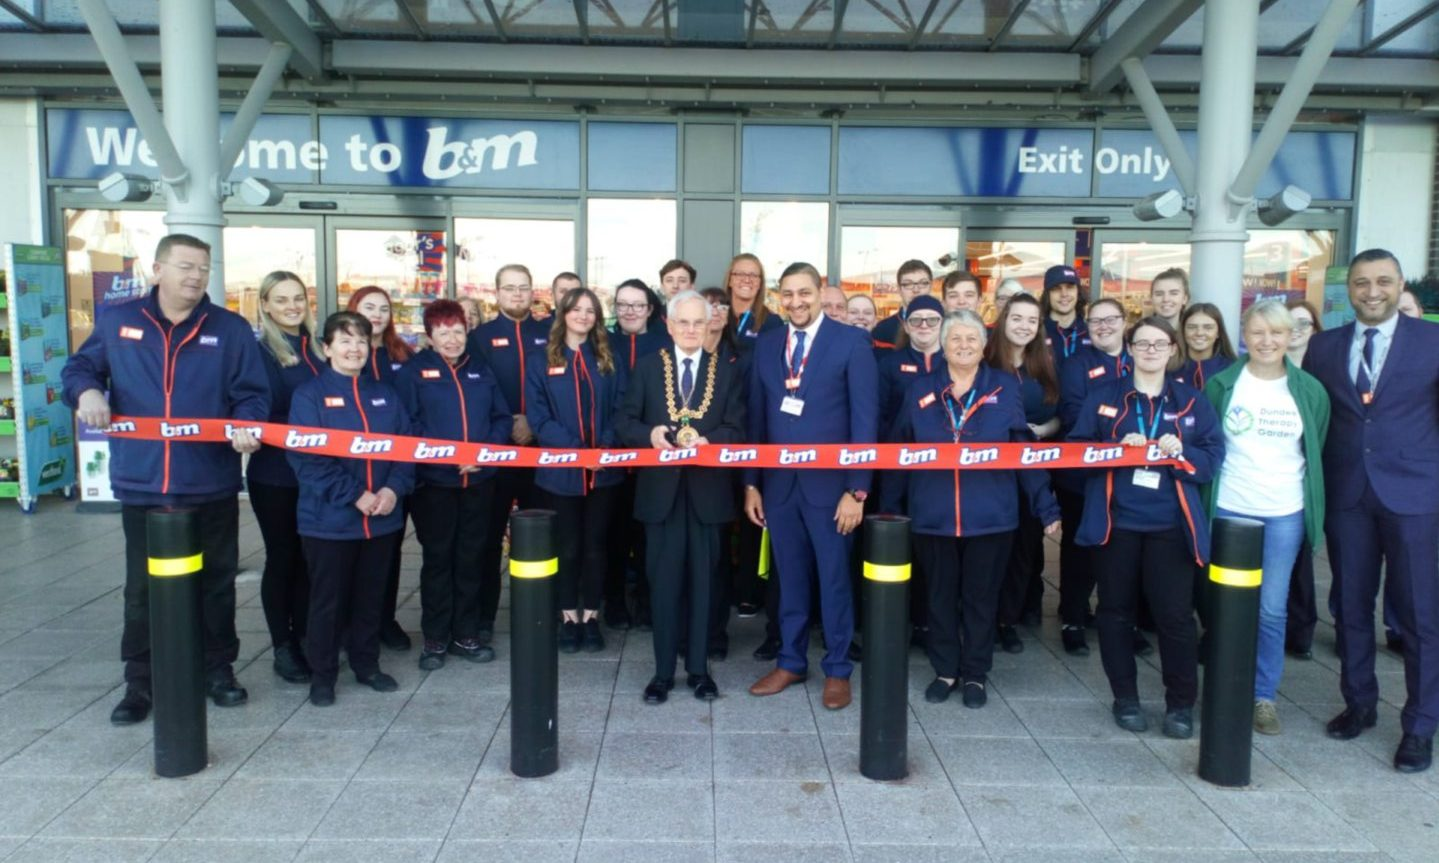 Dundee Lord Provost Ian Borthwick cuts the ribbon at the new B&M store.